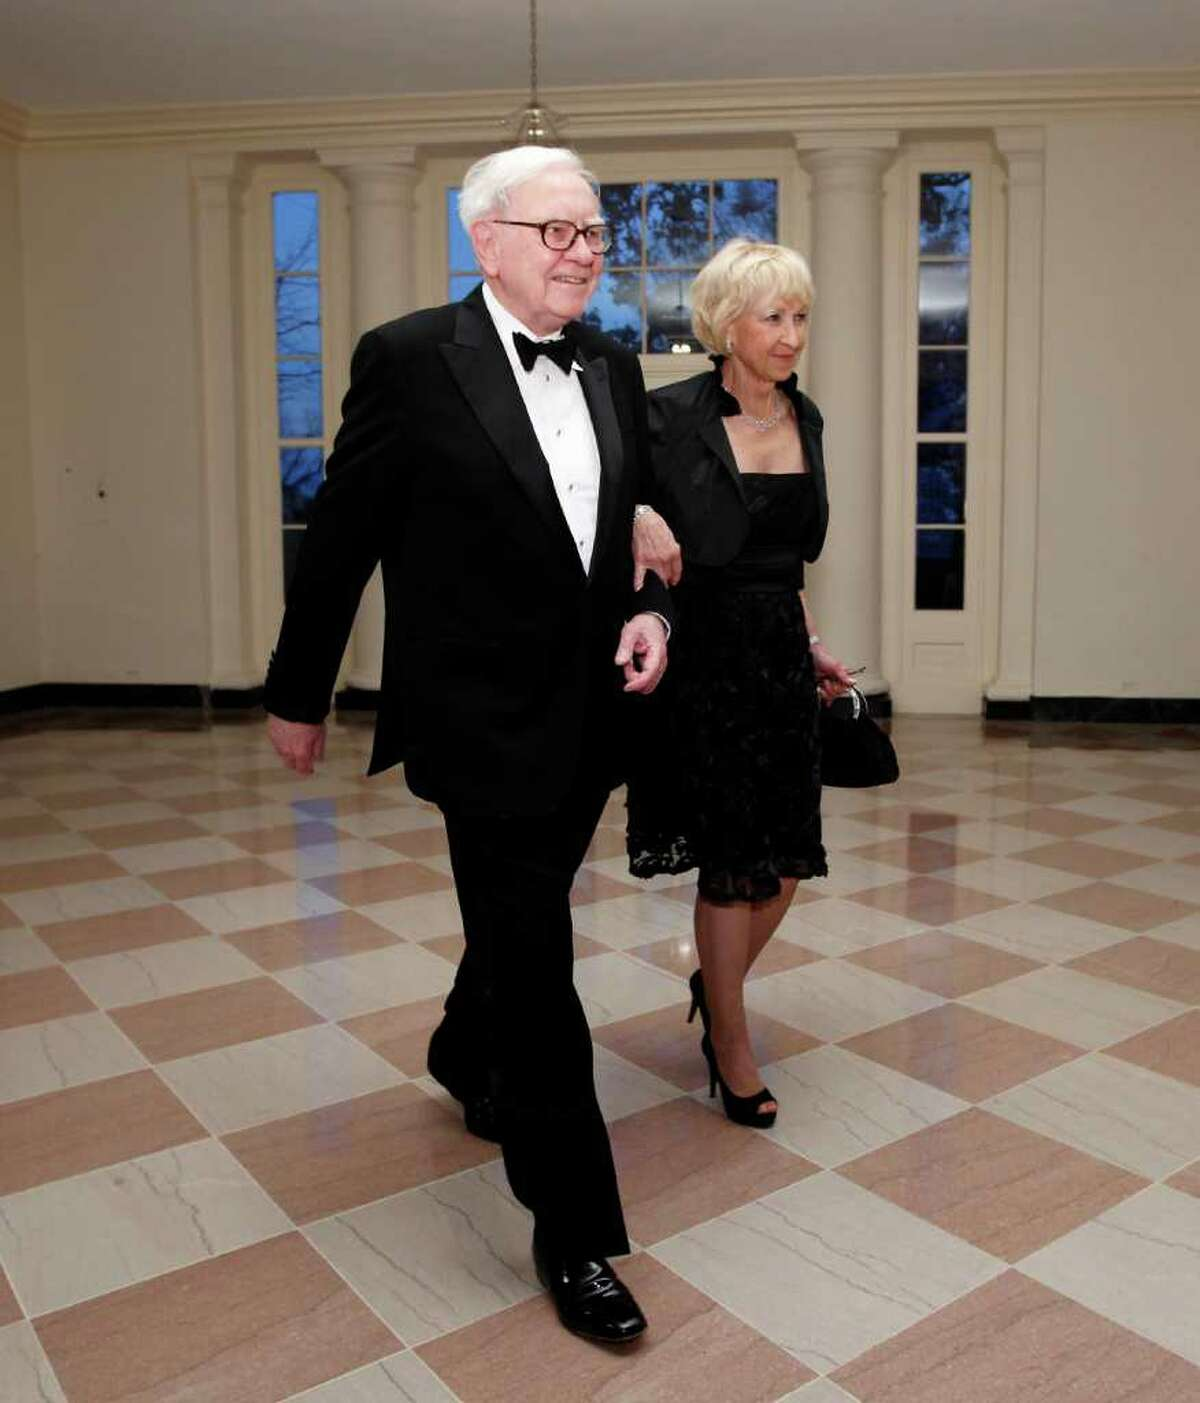 FILE - In this March 14, 2012 file photo, Warren Buffett and Astrid M. Buffett arrive at the Booksellers area of the White House in Washington for the State Dinner hosted by President Barack Obama and first lady Michelle Obama for British Prime Minister David Cameron and his wife Samantha. A bill designed to enact President Barack Obama's plan for a